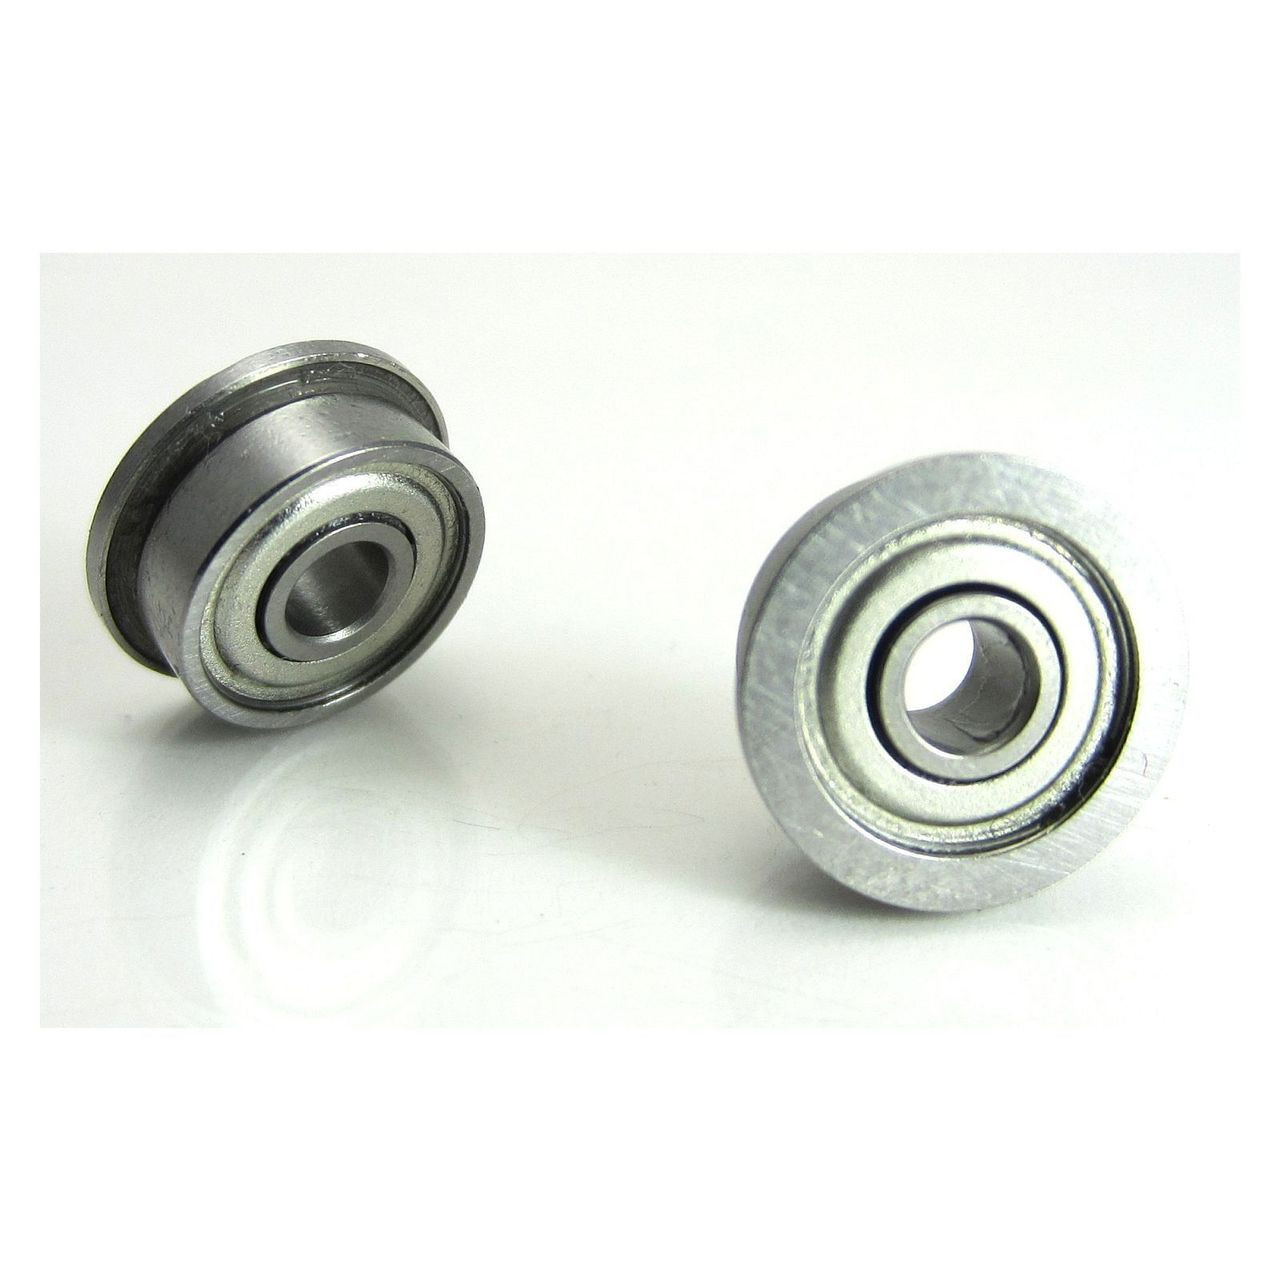 """TRB RC 1/8x3/8x5/32"""" Flanged Precision Brushless Motor Ball Bearings (2) Chrome Steel"""